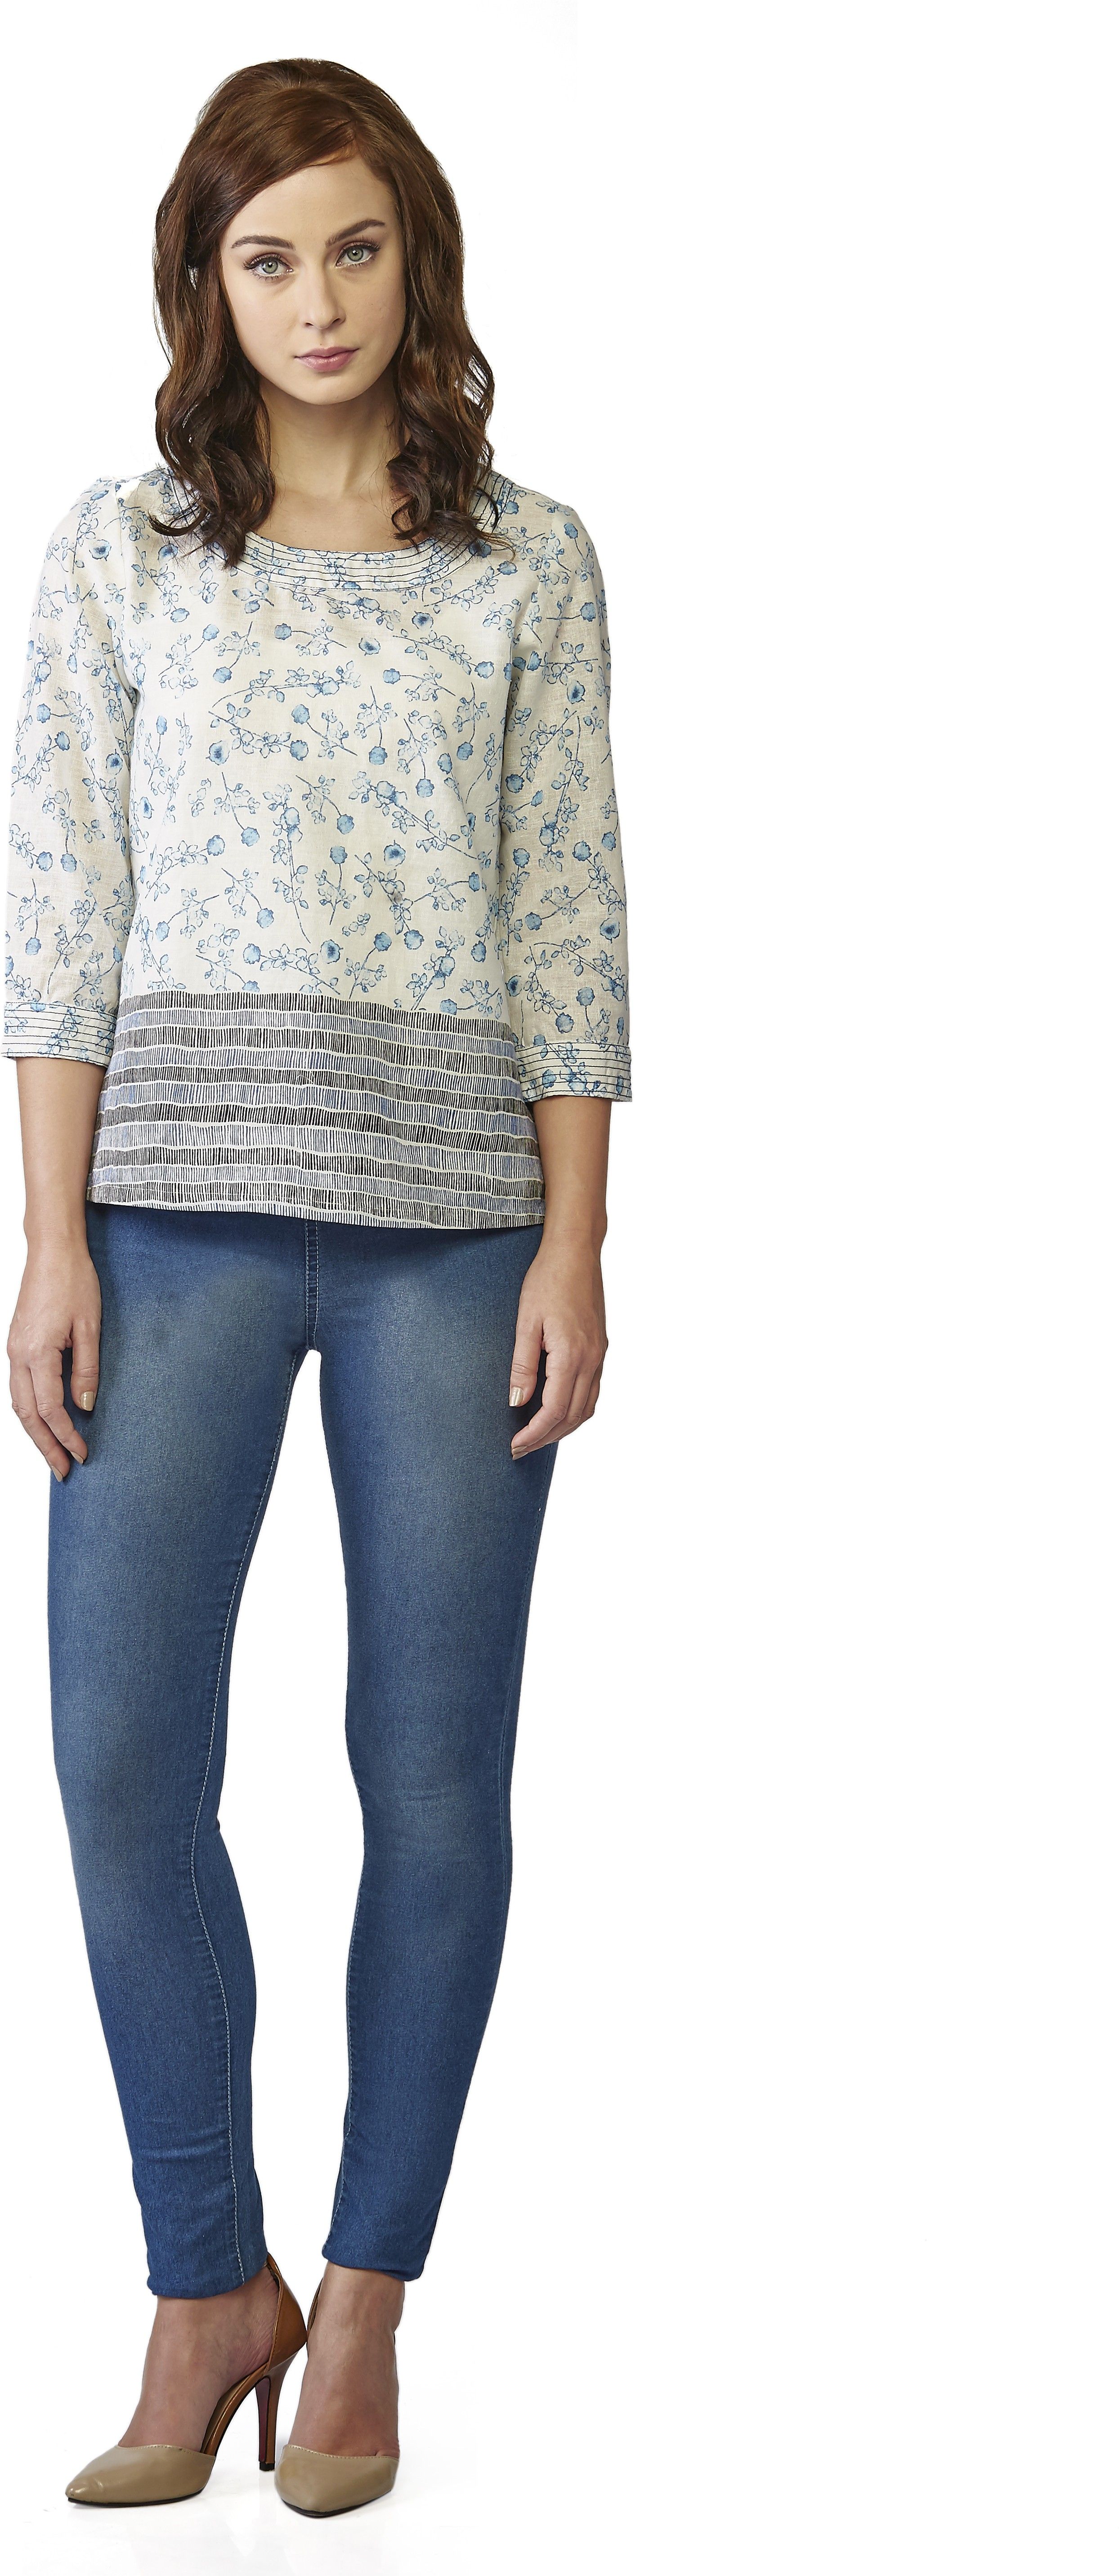 Deals | AND, Chemistry Tops, Trousers..